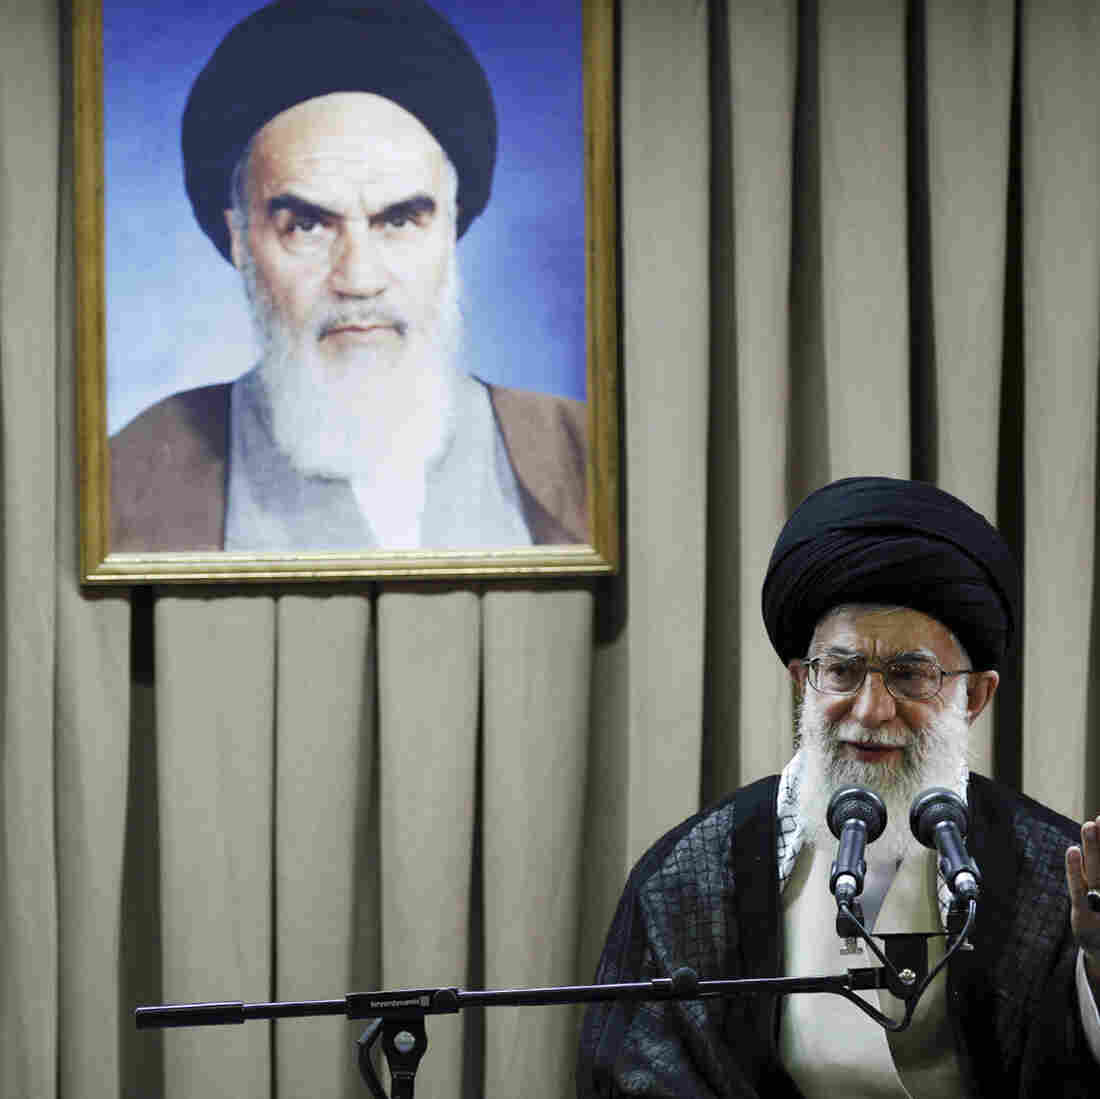 As Sanctions Take A Toll, Debate In Iran Heats Up